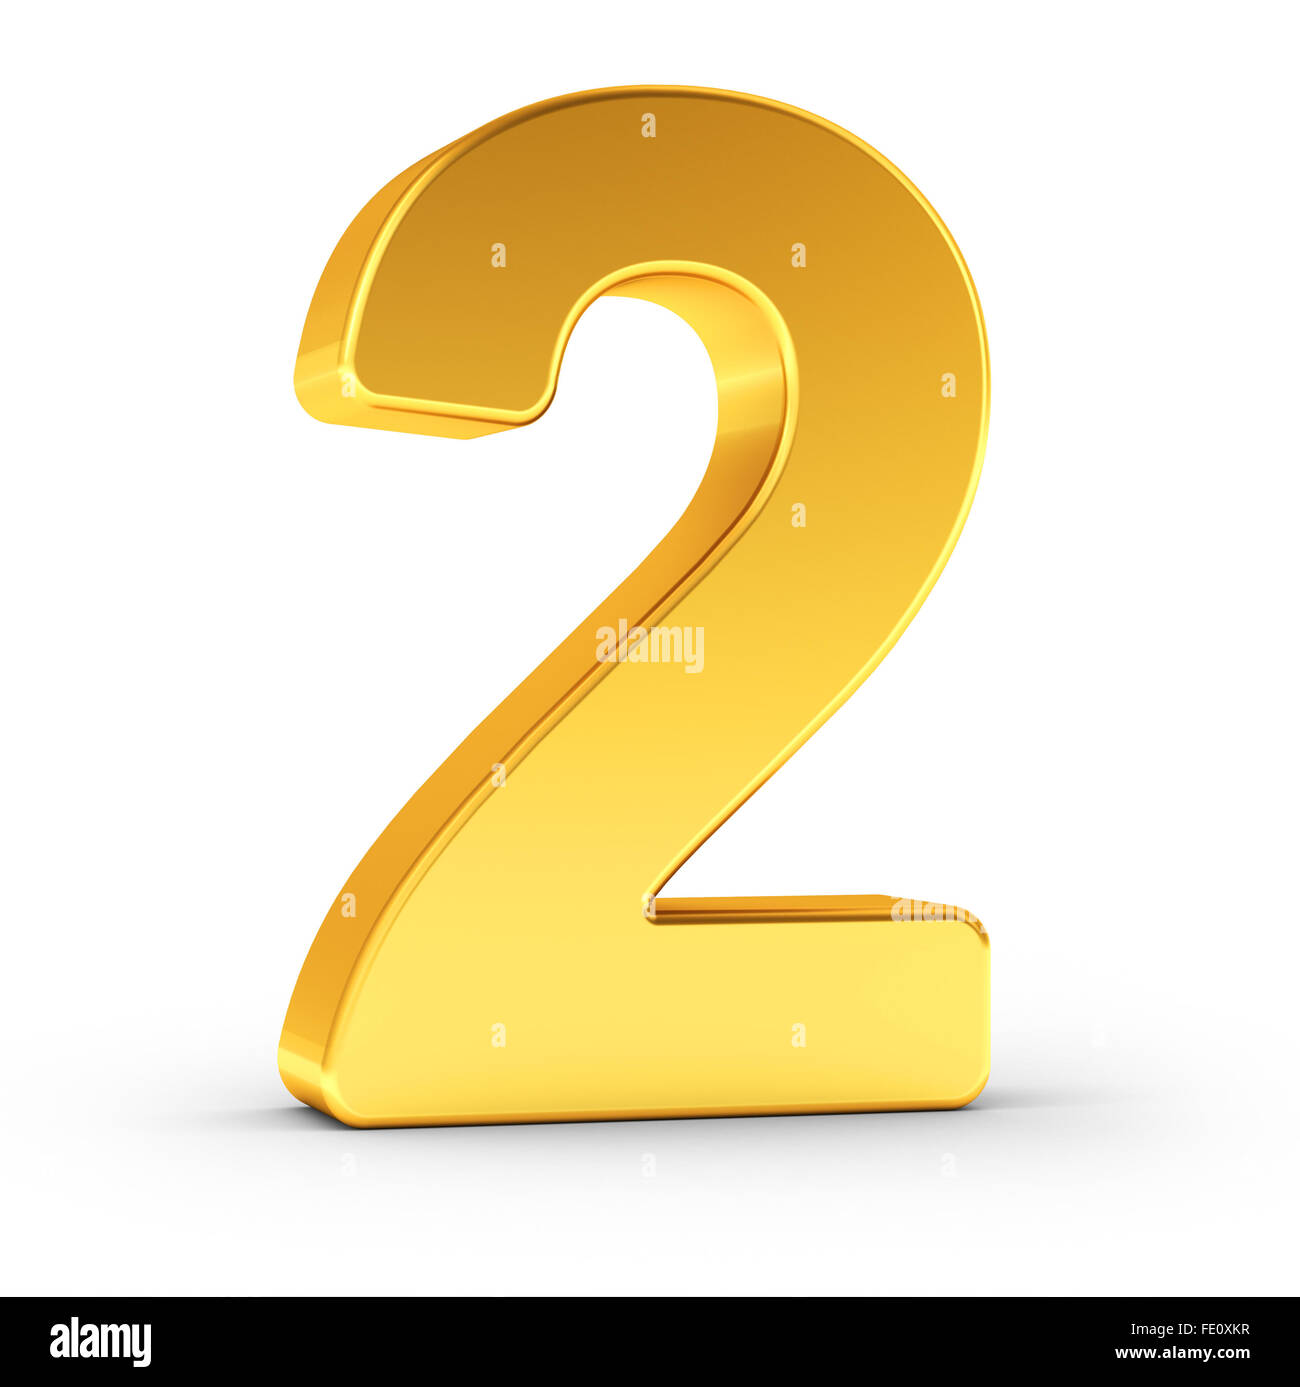 The number two as a polished golden object - Stock Image